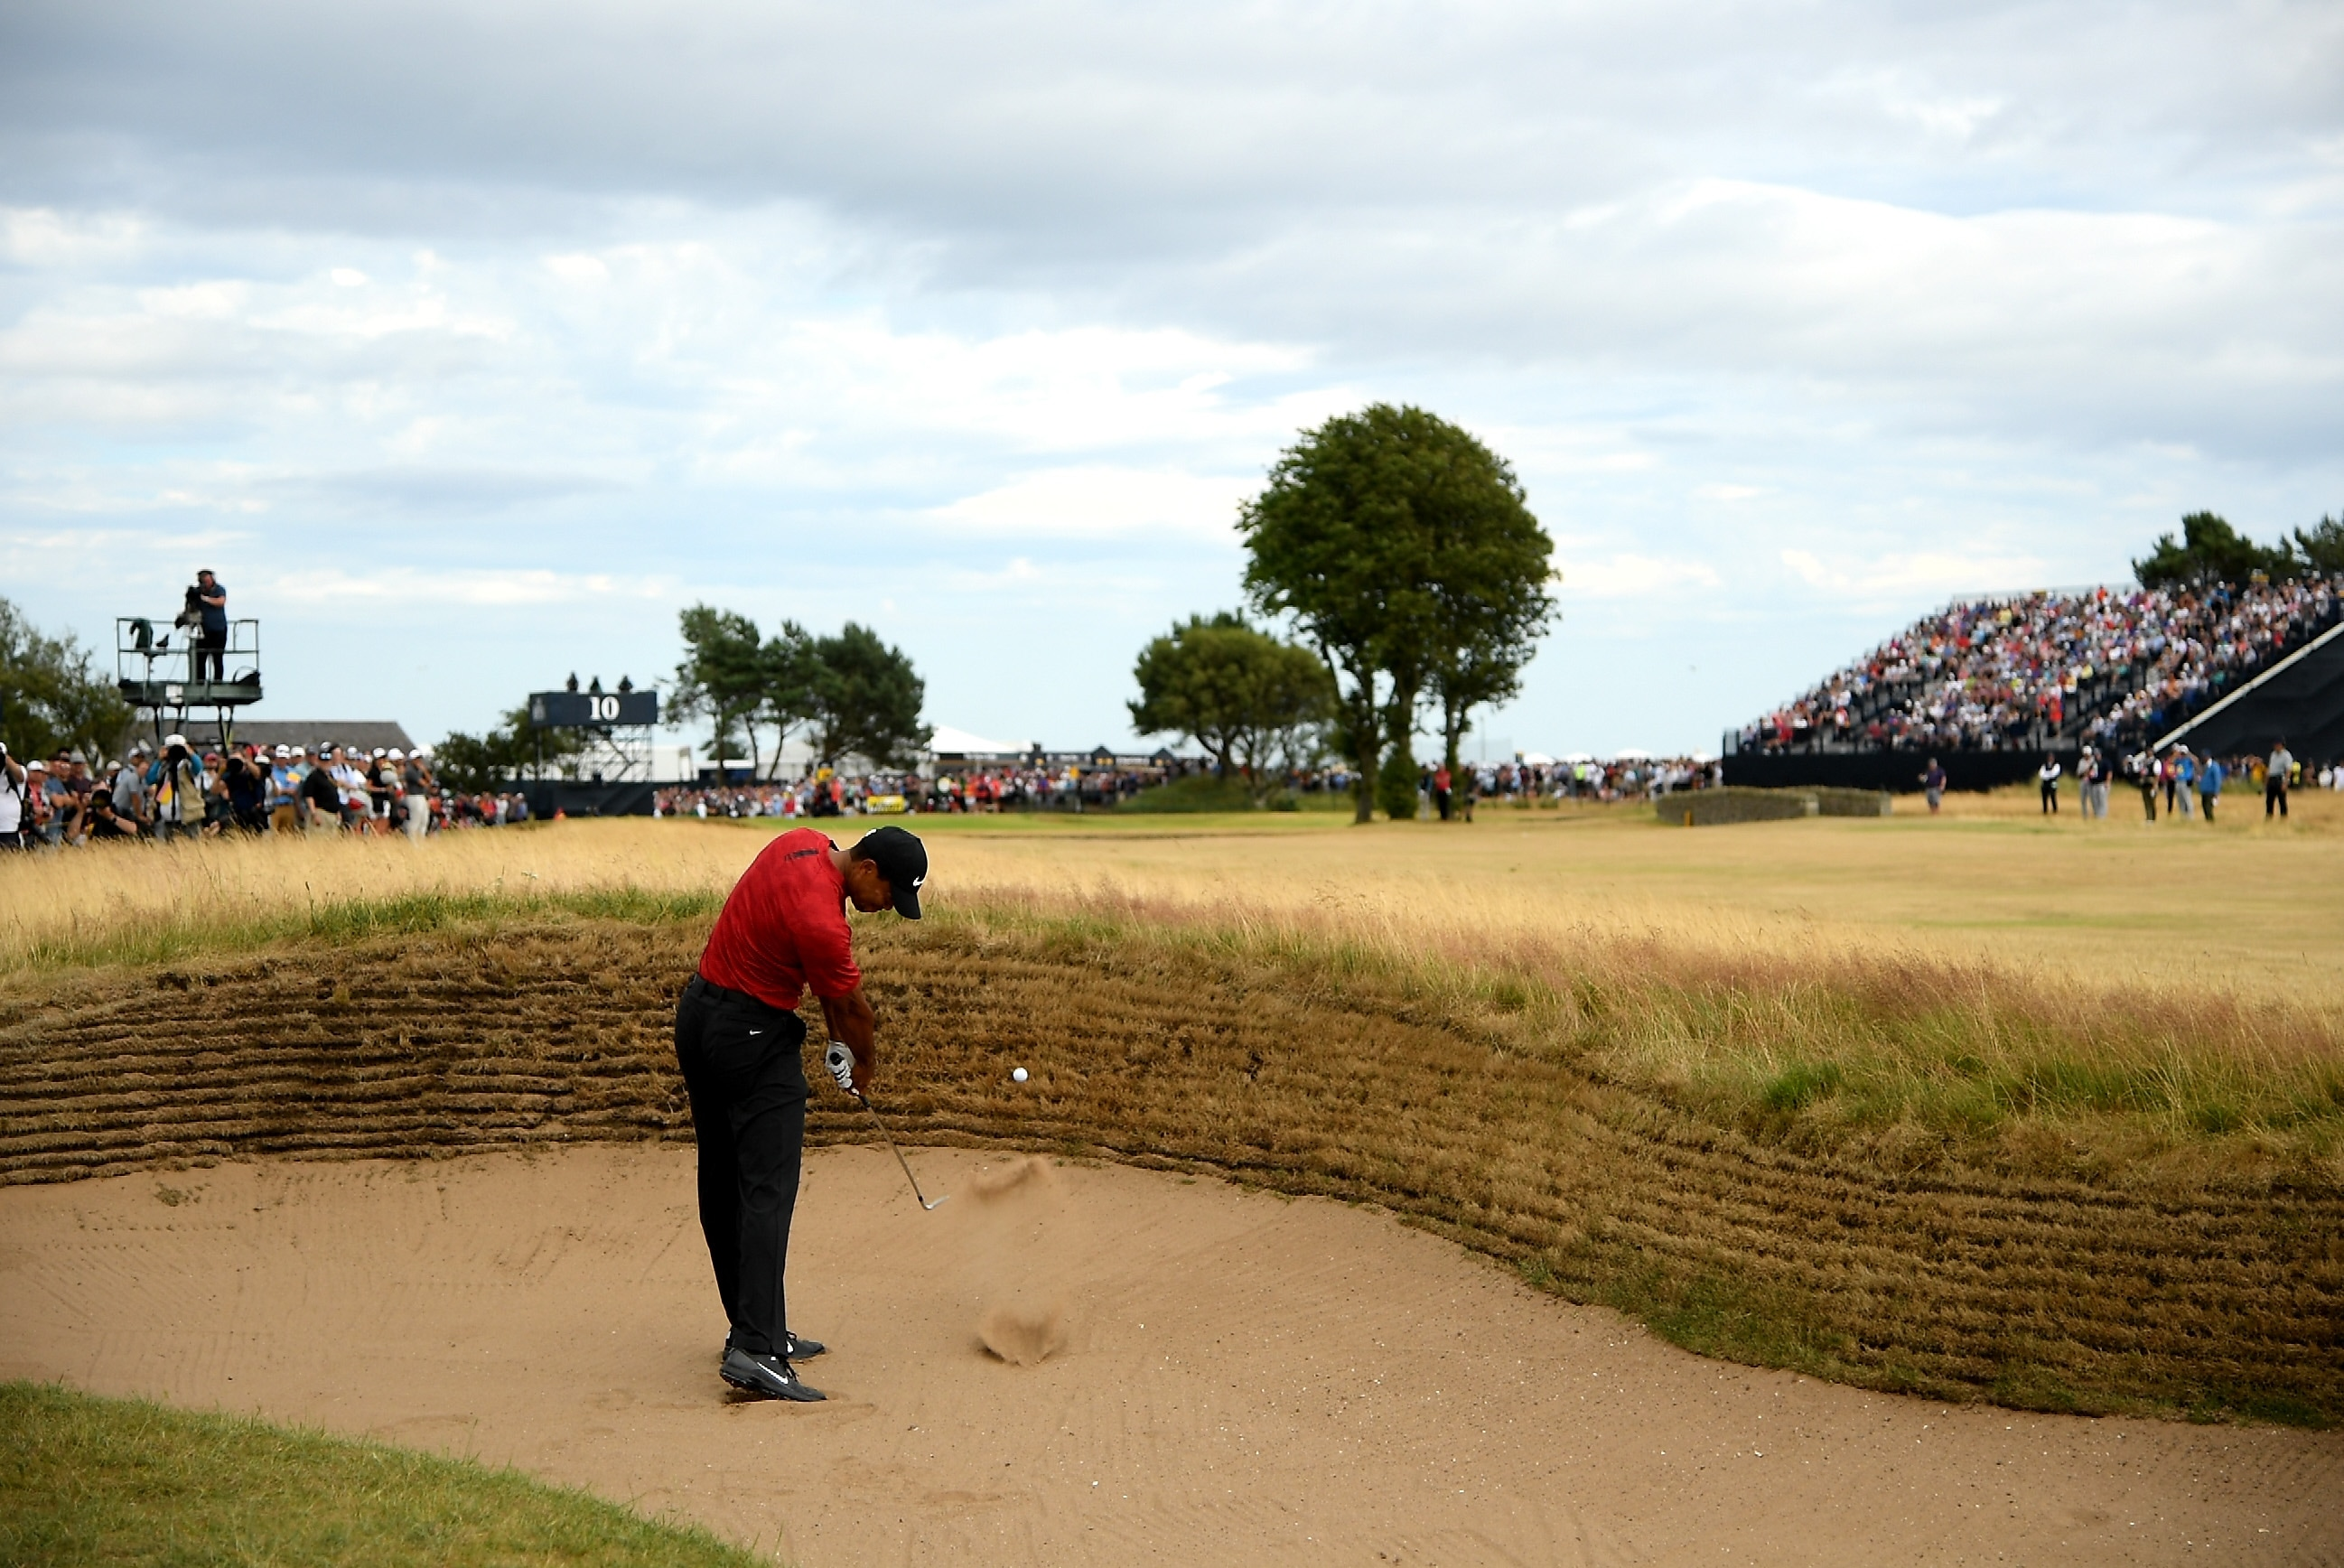 Tiger Woods at the 2018 Open Championship